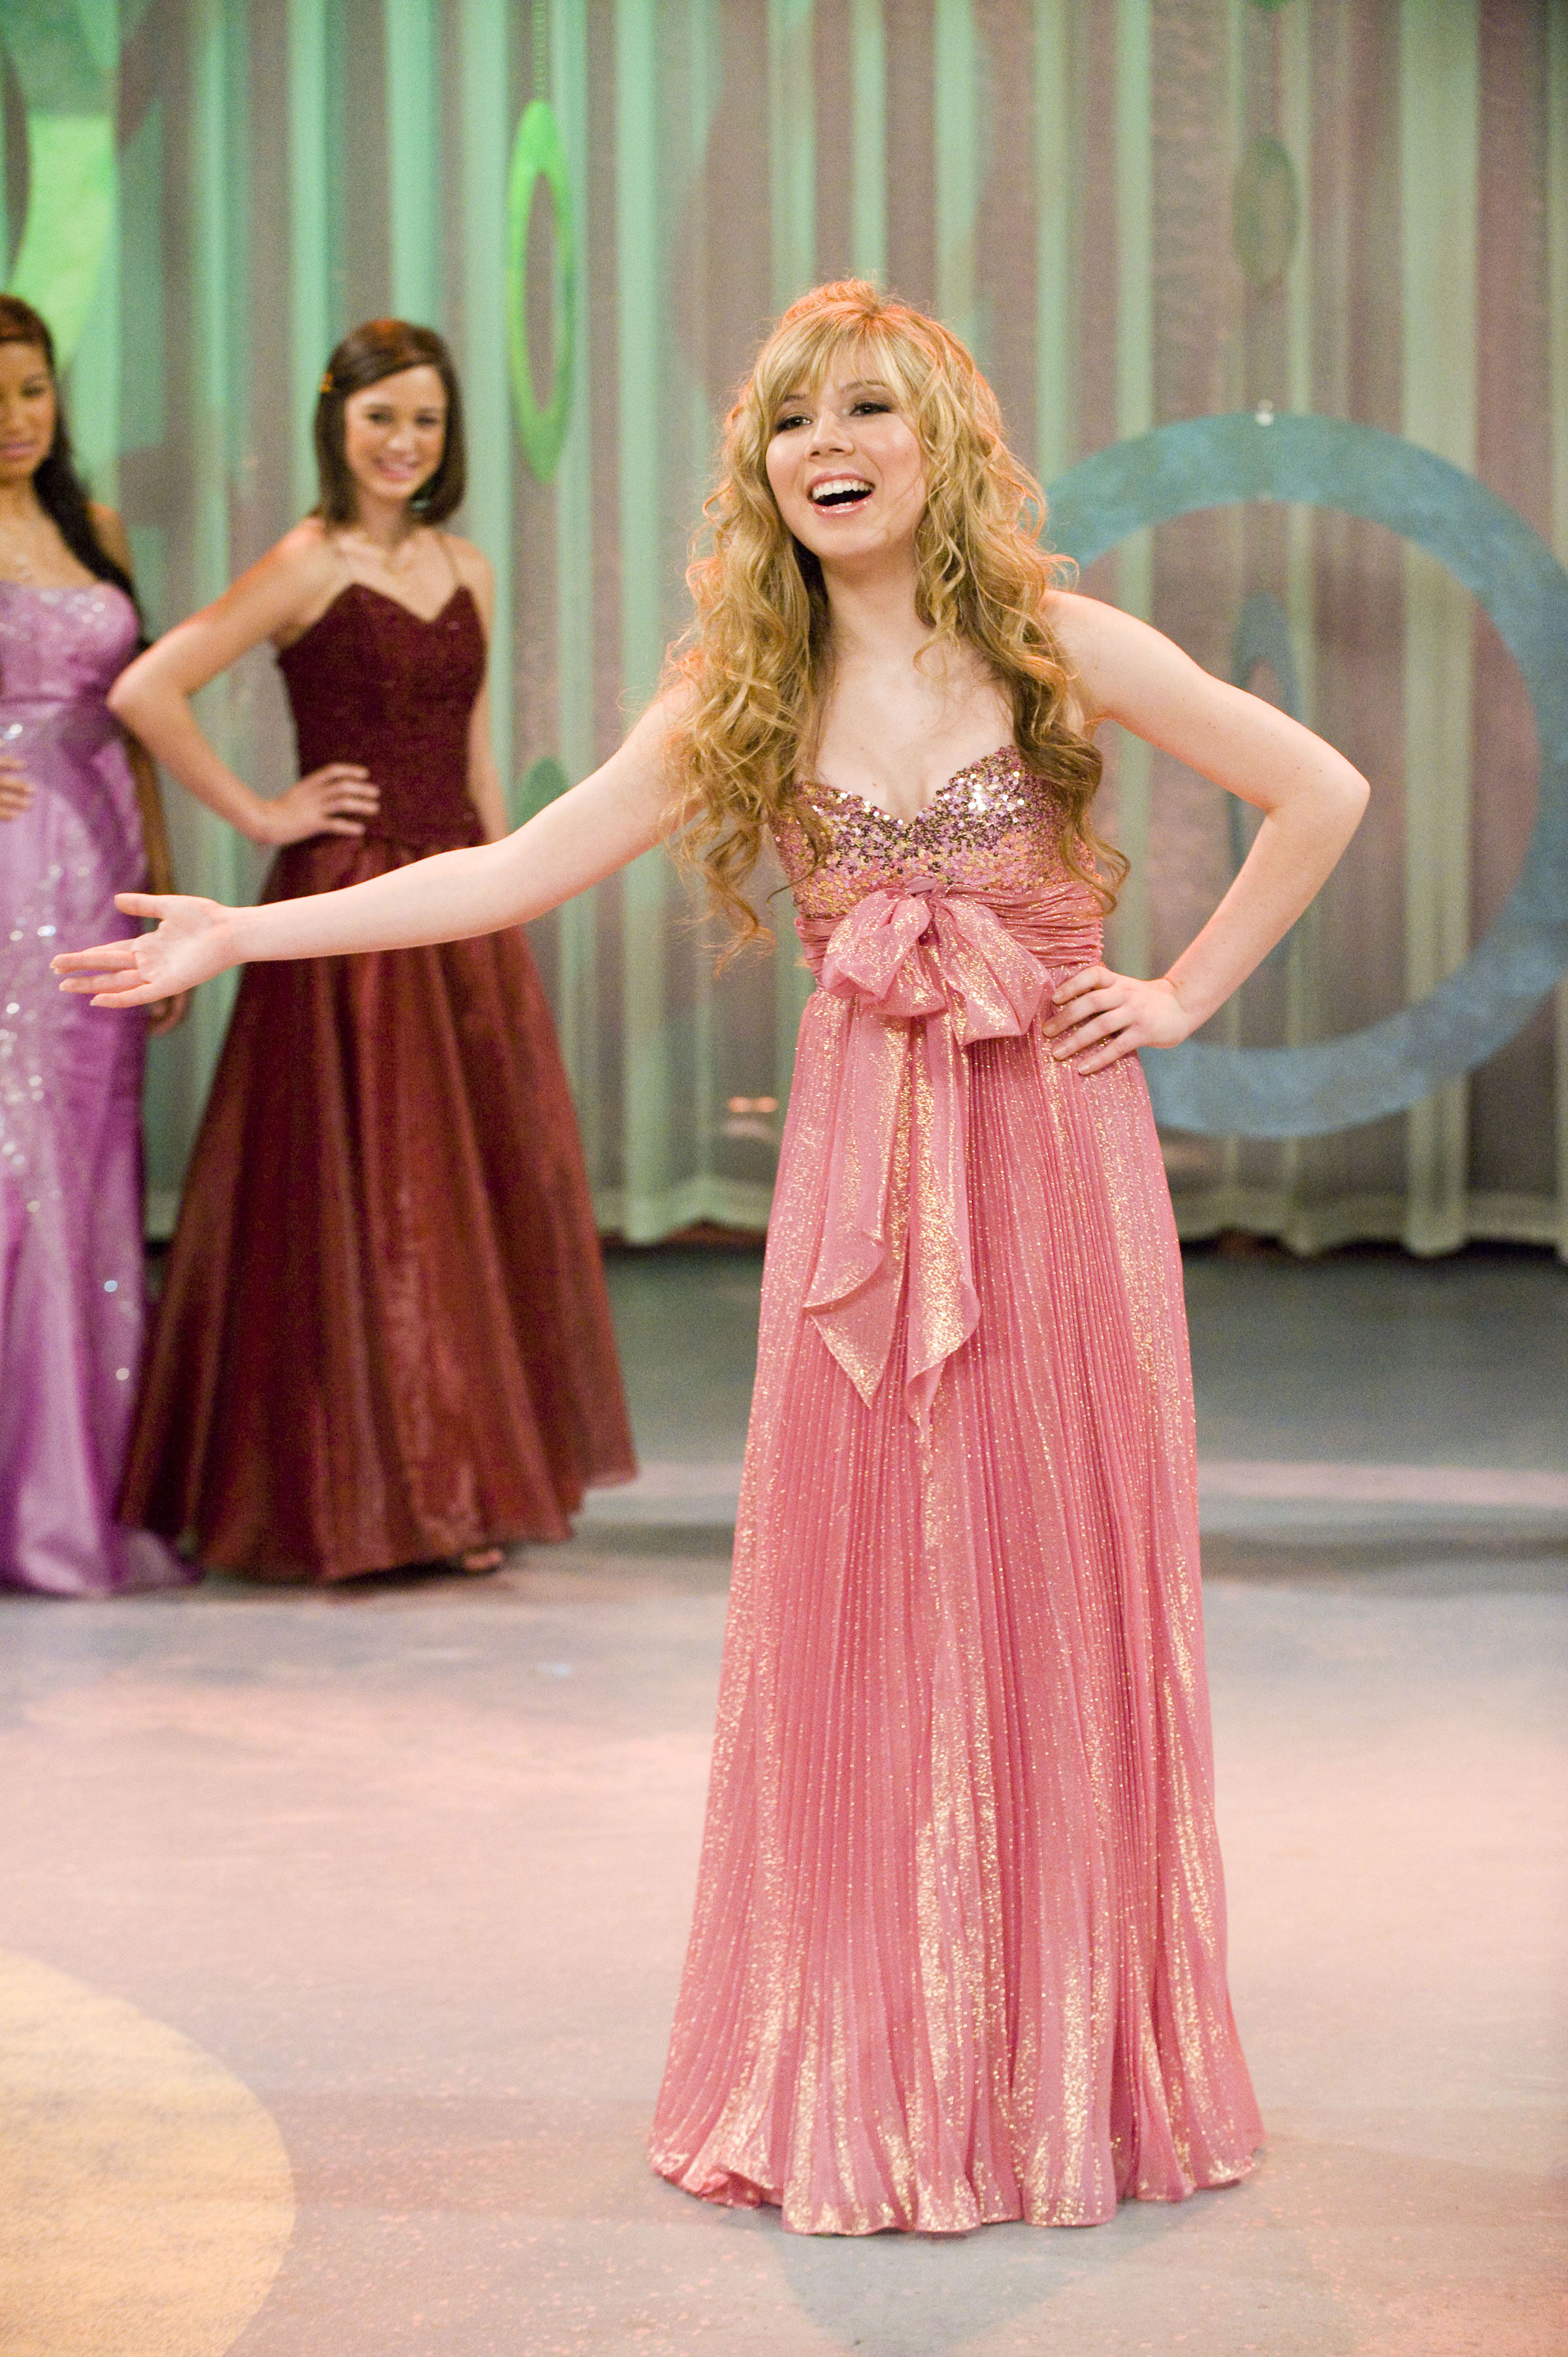 Jennette McCurdy as Sam Puckett